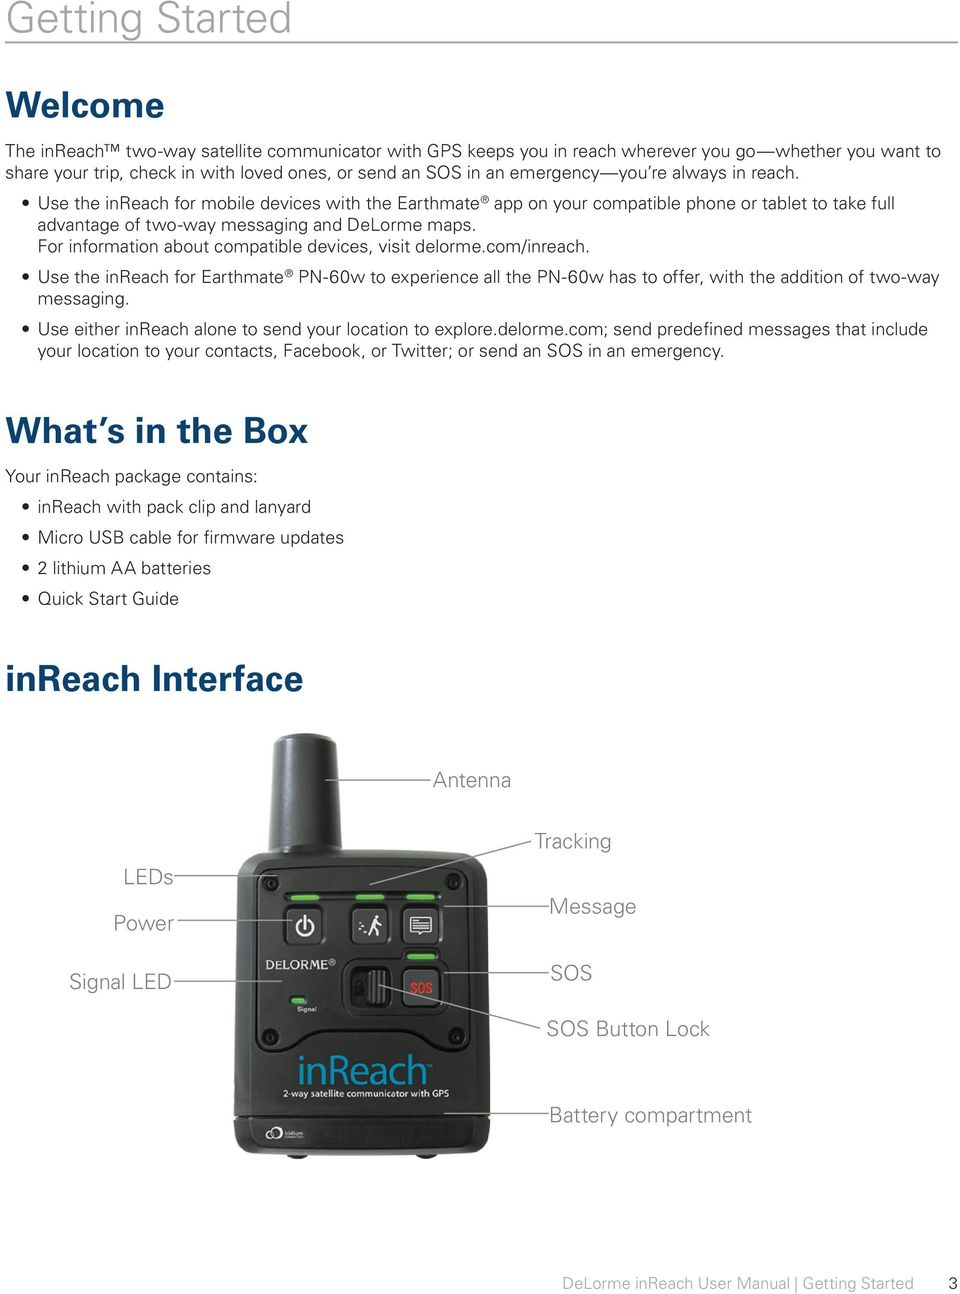 For information about compatible devices, visit delorme.com/inreach. Use the inreach for Earthmate PN-60w to experience all the PN-60w has to offer, with the addition of two-way messaging.